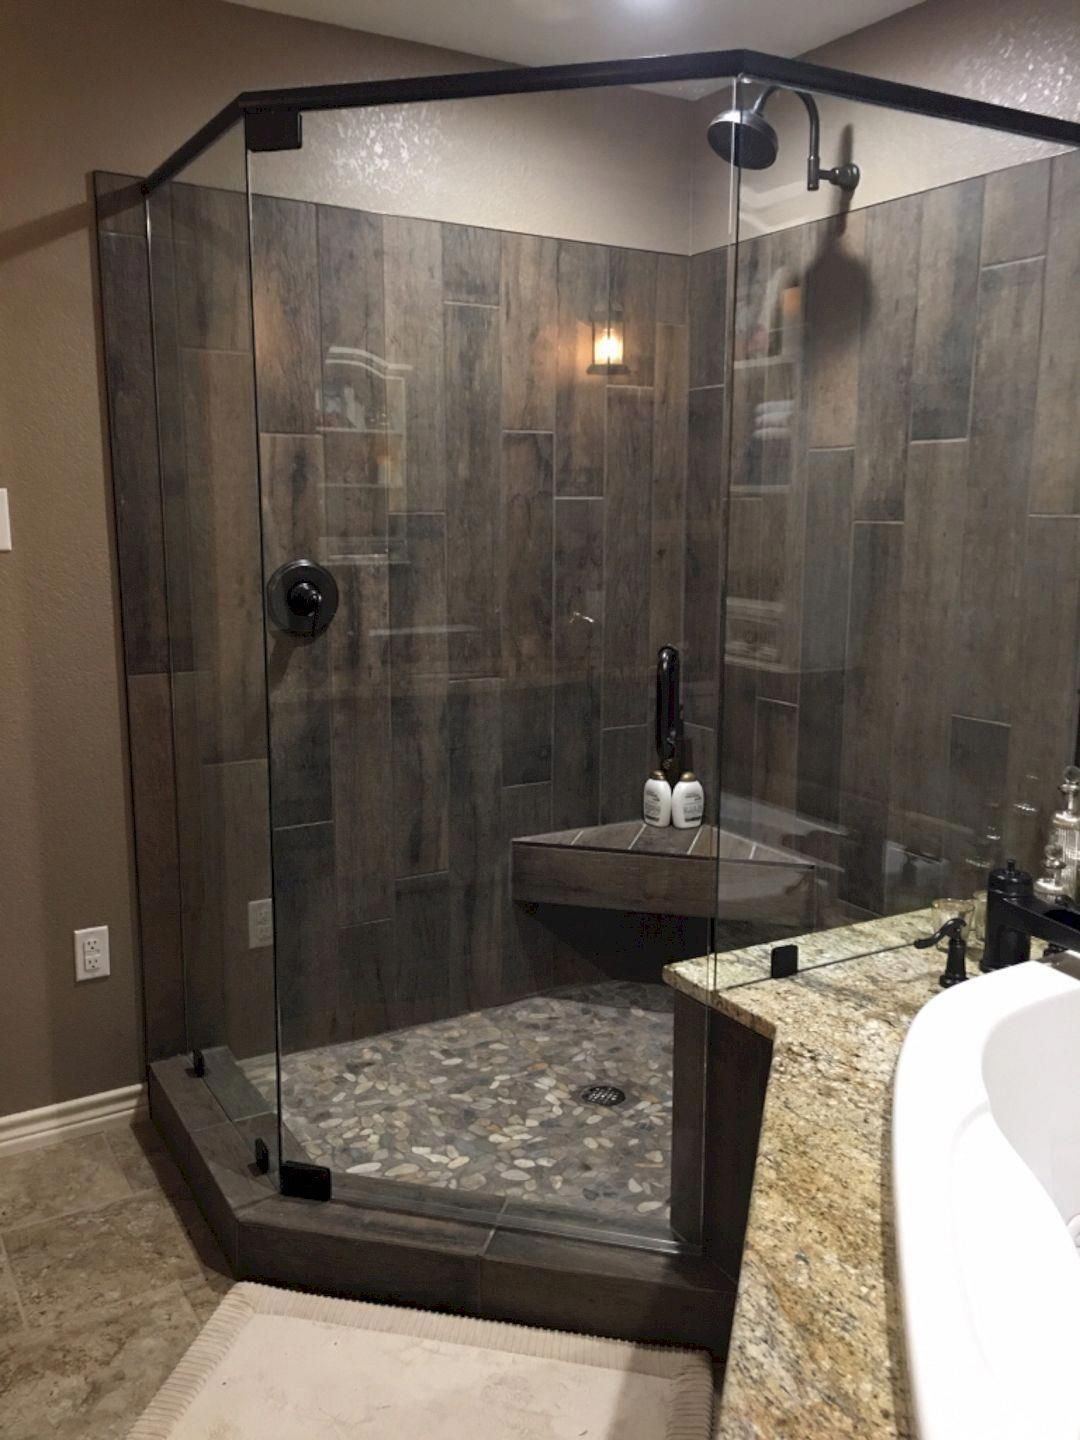 Advice Methods Furthermore Guide With Respect To Obtaining The Greatest End Result And Also Attaining The Maximum Utilization Of Diy Home Upg In 2020 Bathrooms Remodel